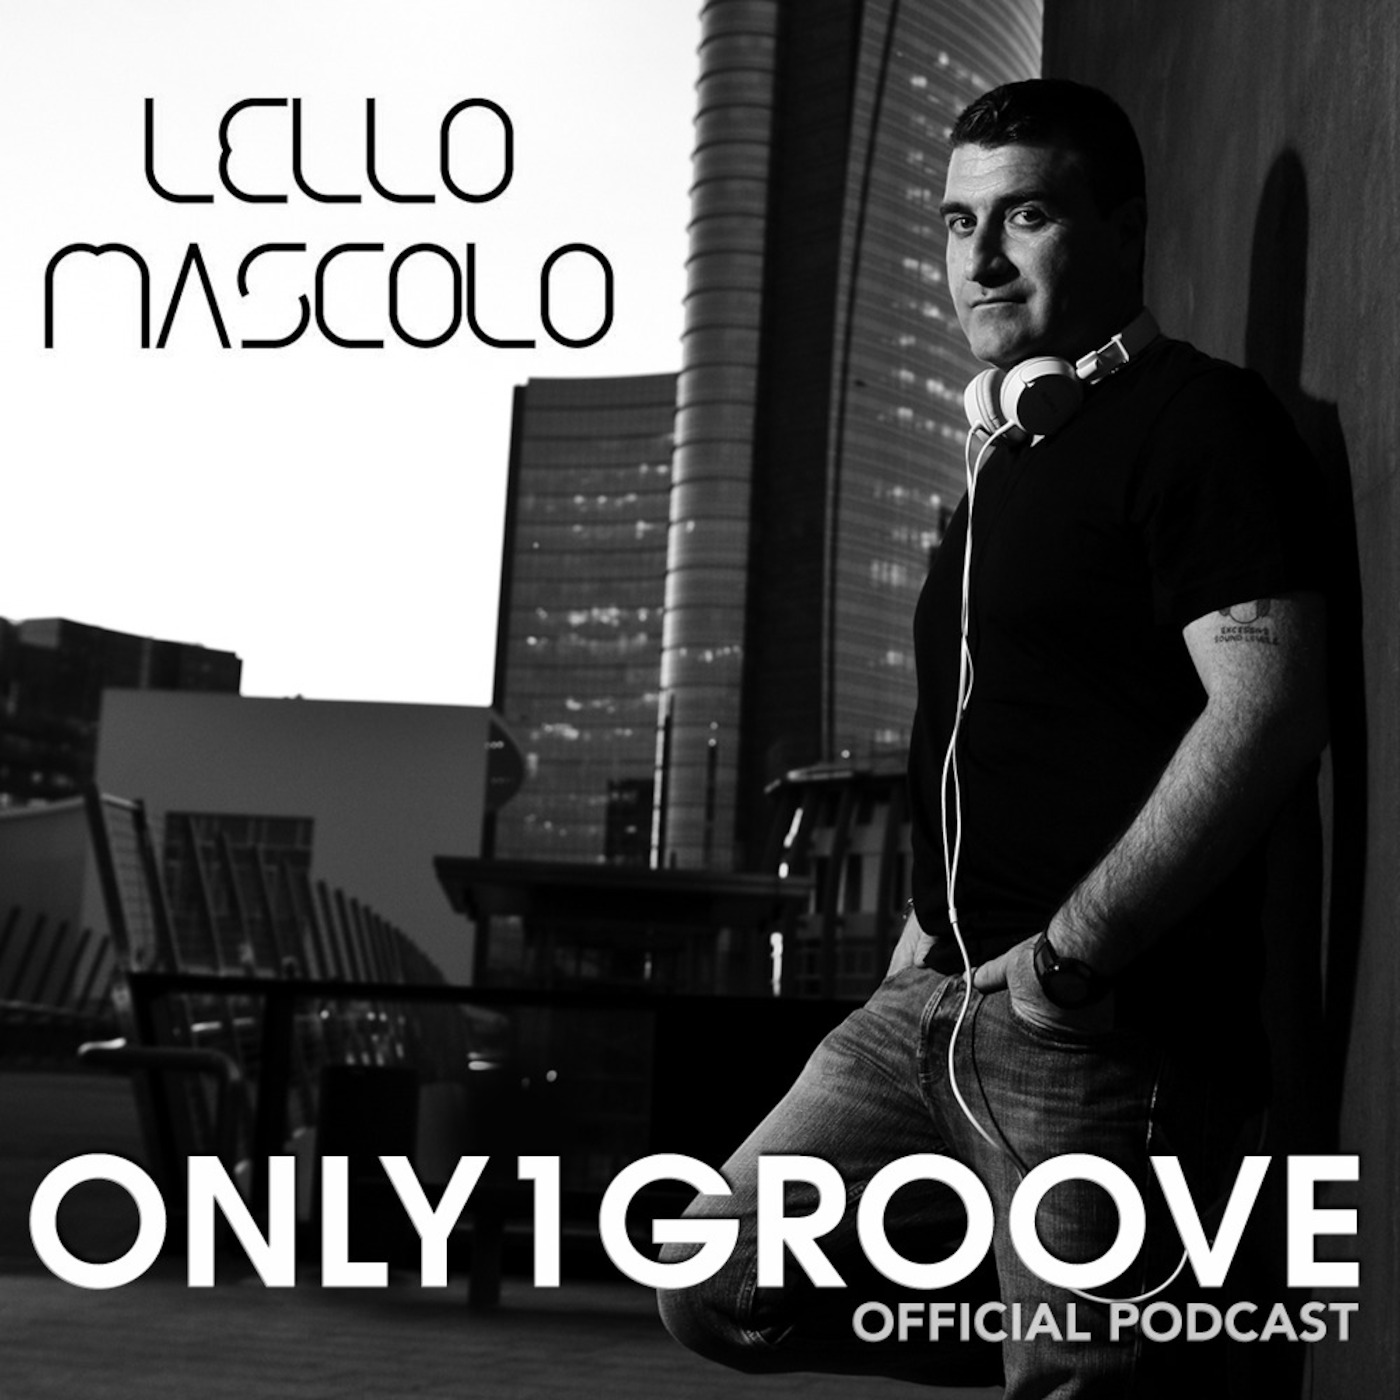 Lello Mascolo's Only1Groove official podcast